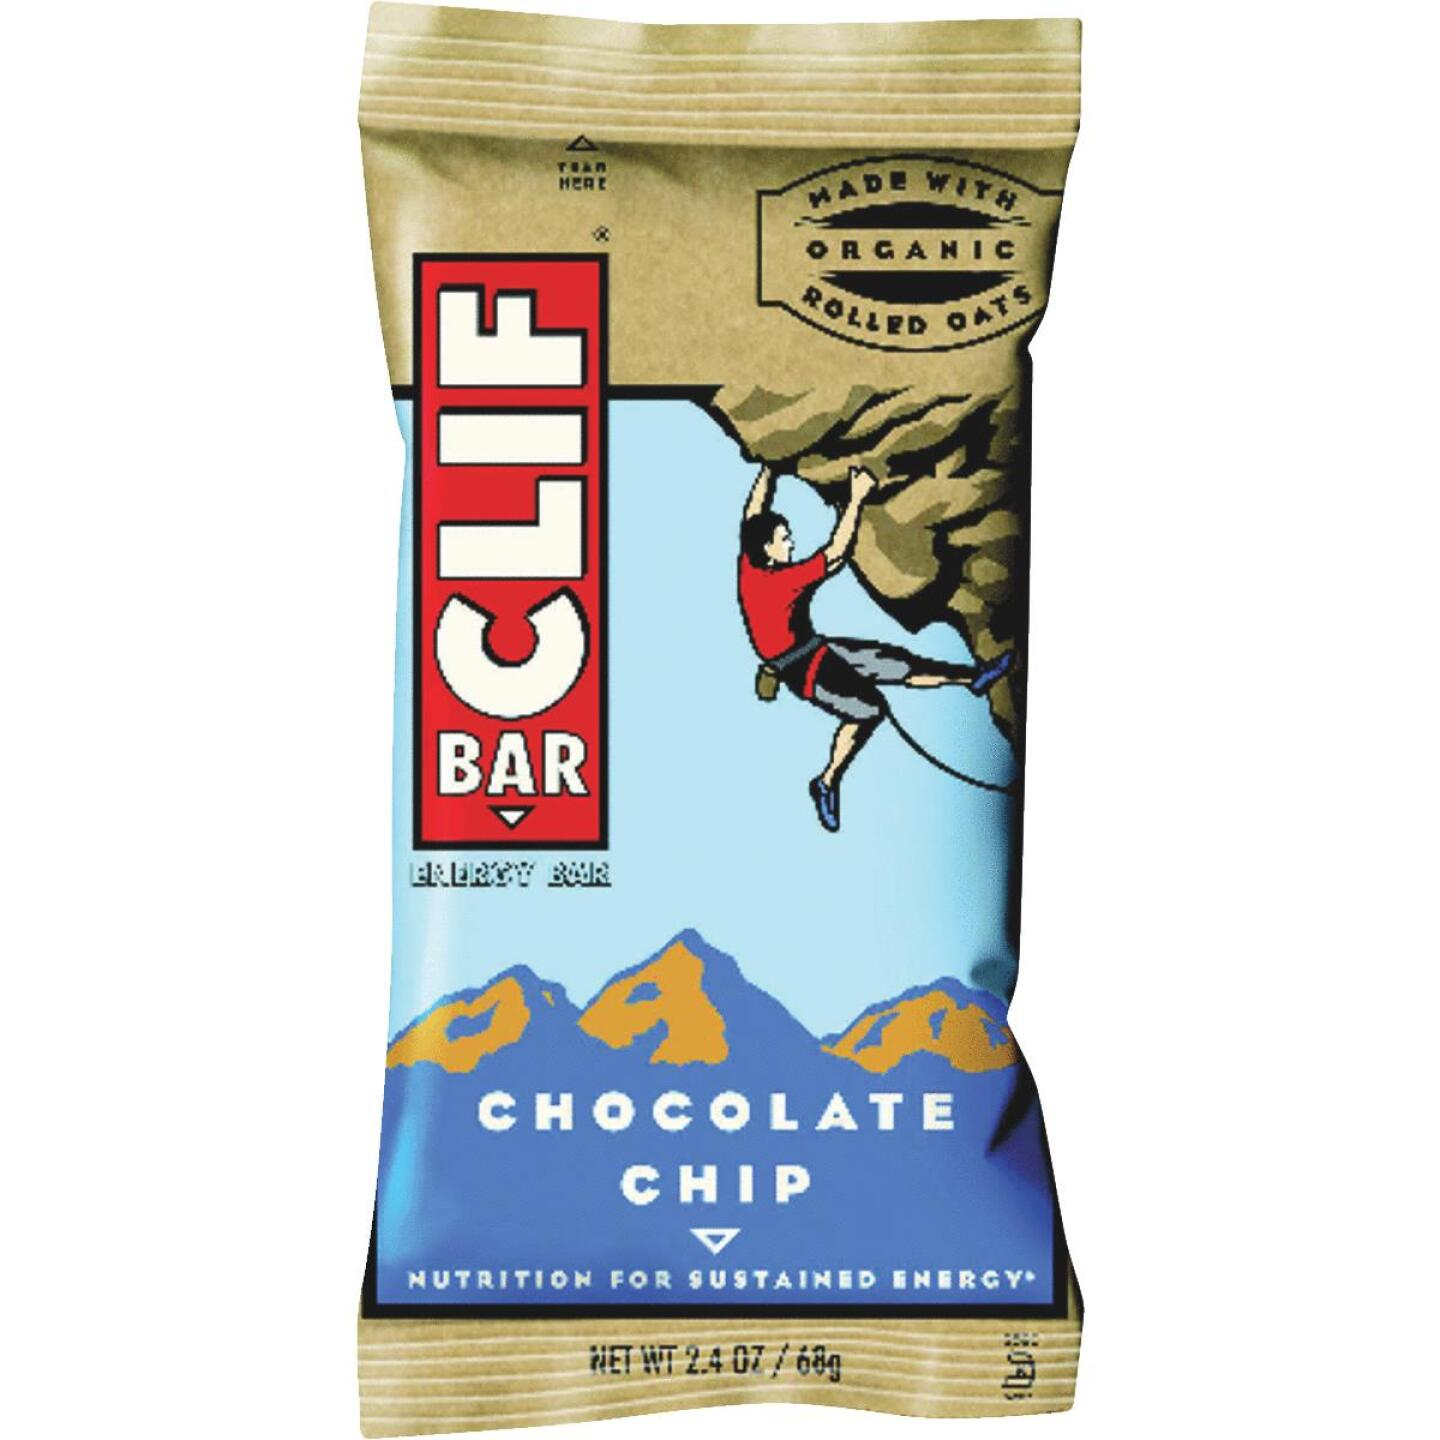 Clif Bar Chocolate Chip 2.4 Oz. Energy Nutrition Bar Image 1